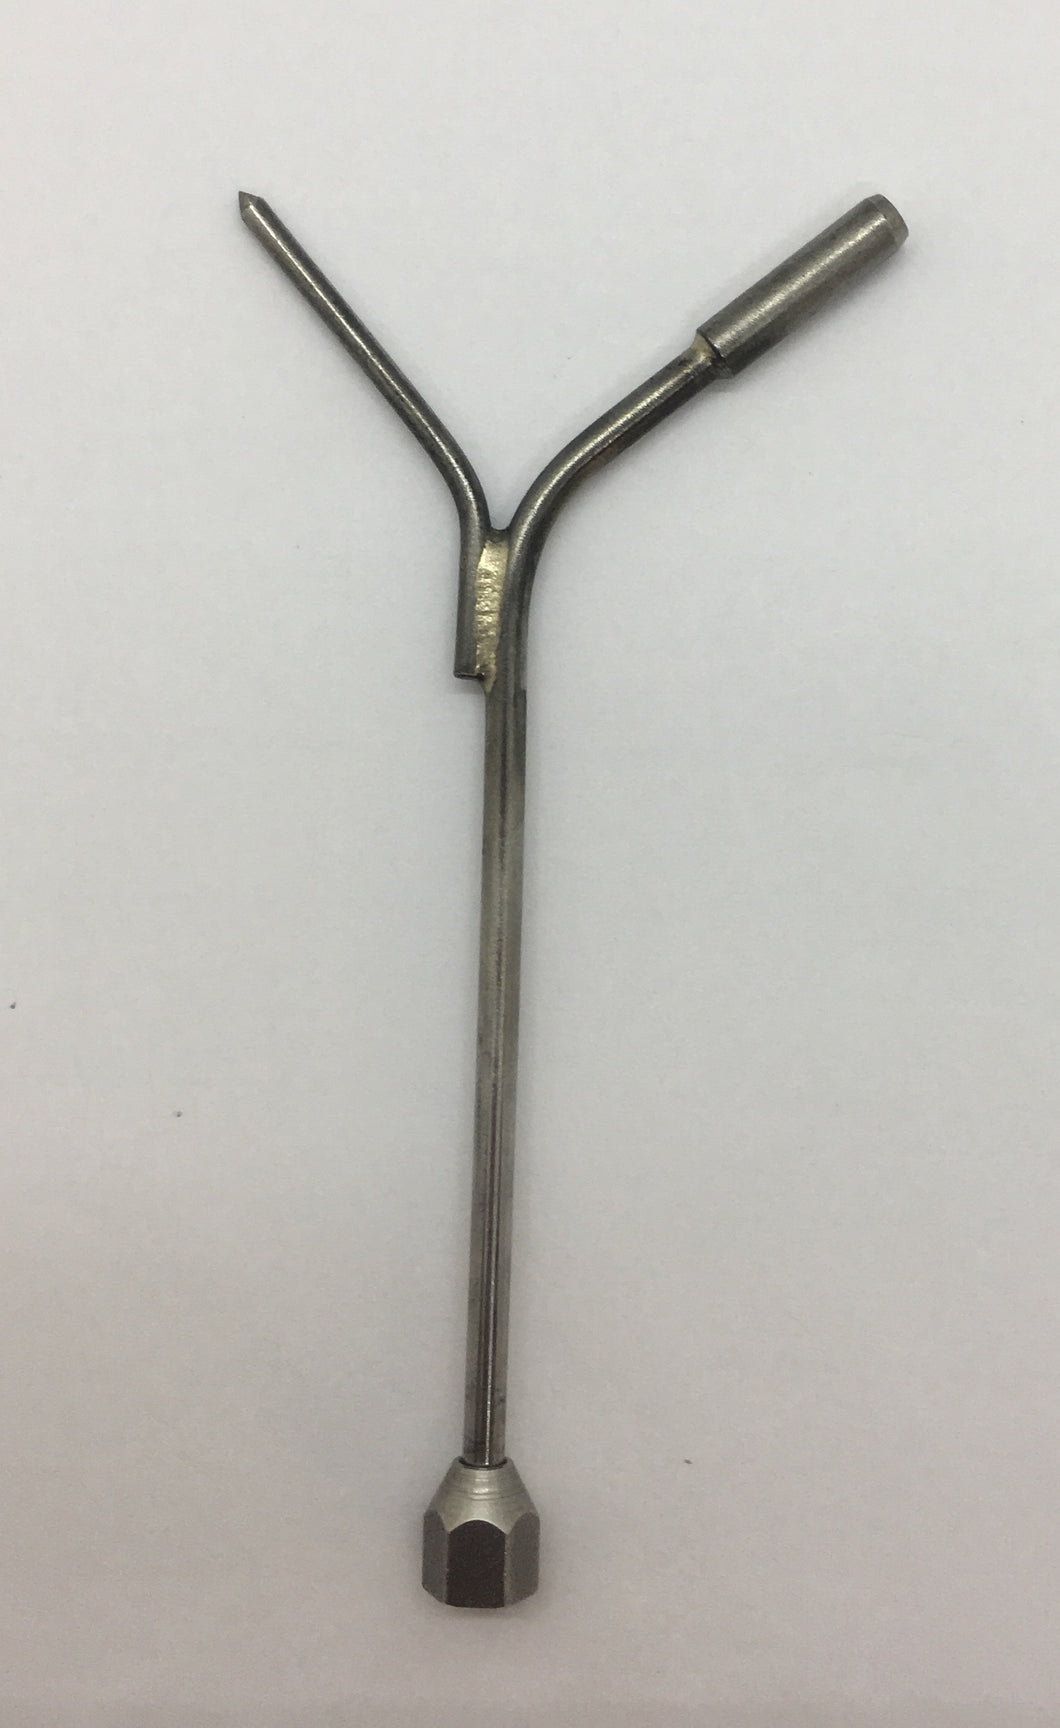 Torch Tip with Stainless Steel Pick